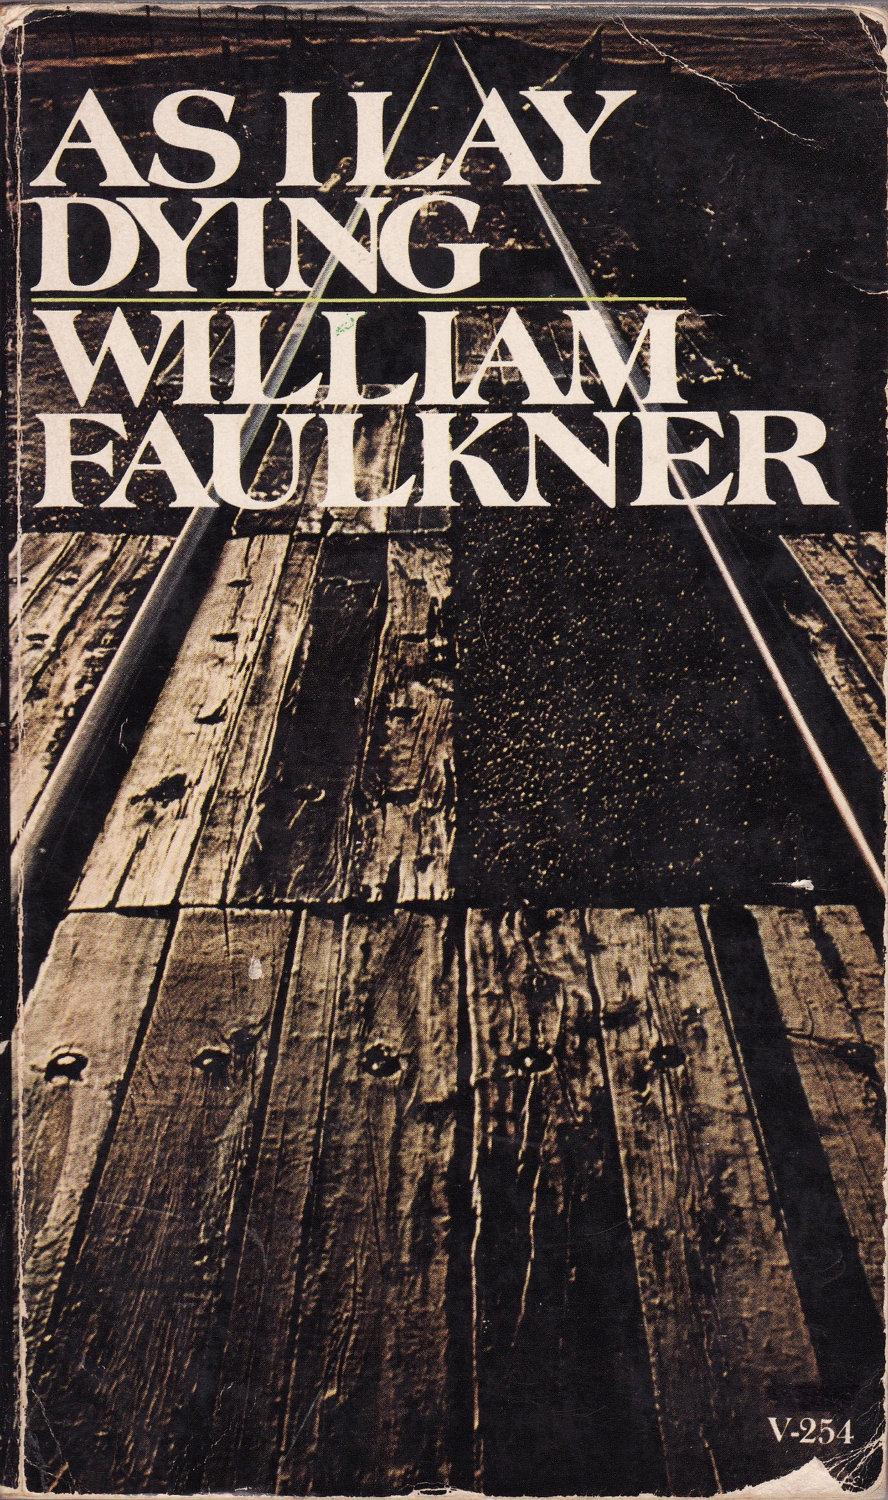 a review of william faulkners as i lay dying On the surface, william faulkner's as i lay dying appears as a solemn reflection on death and yet, through the use of dramatic irony, the novel also takes on the form of a dark twisted comedy.